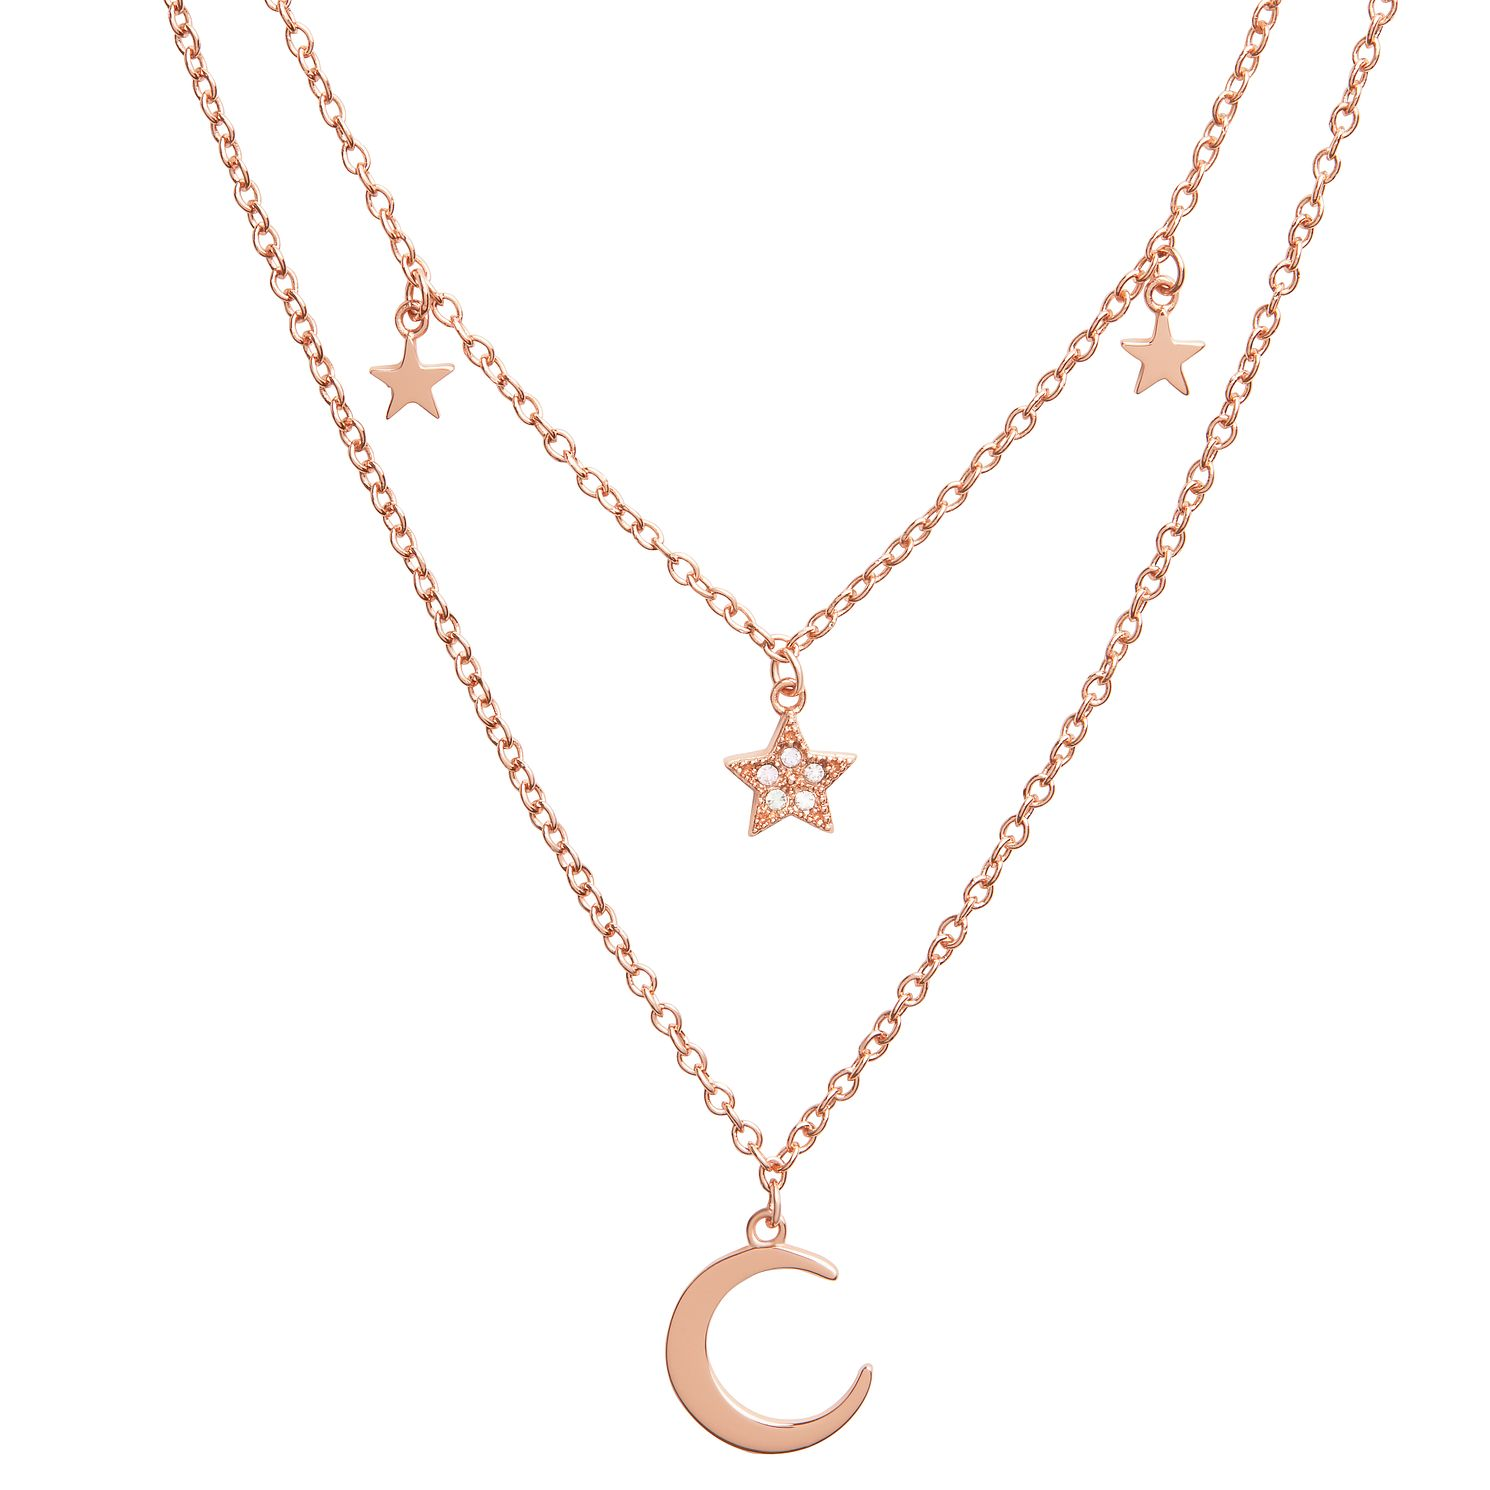 Olivia Burton Celestial Rose Gold Tone Double Chain Necklace - Product number 8200610